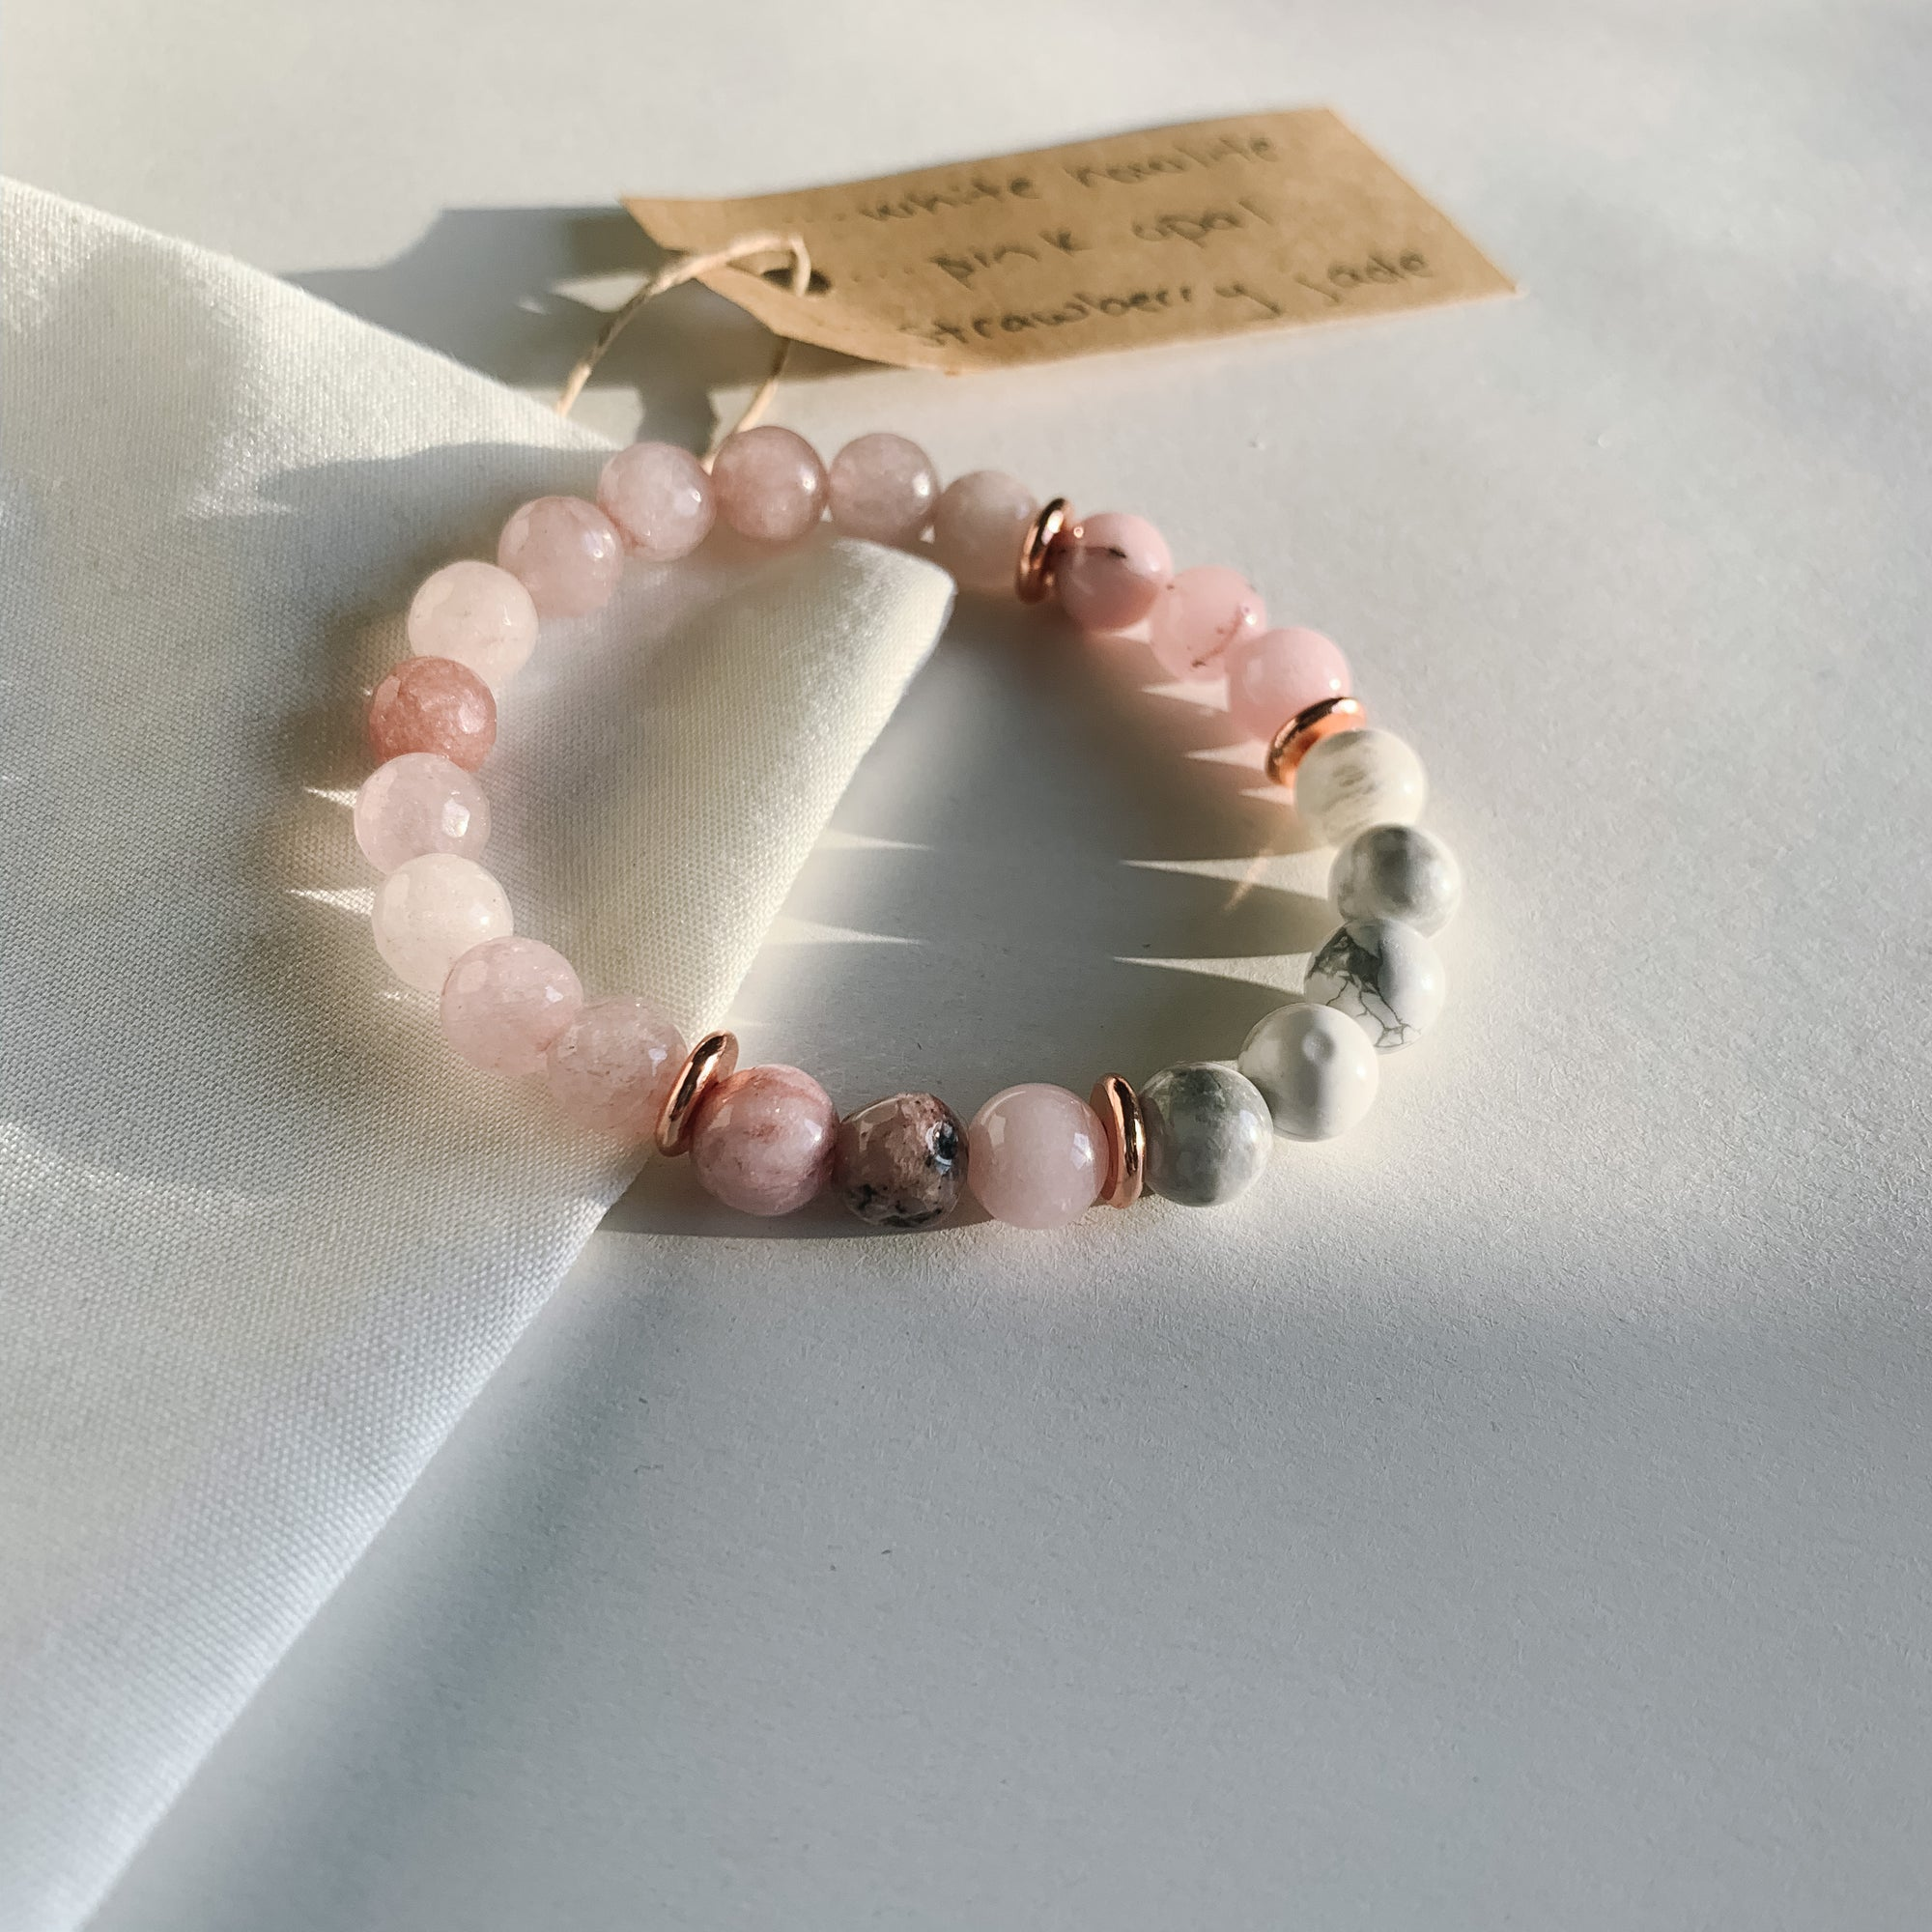 White Howlite, Pink Opal, Strawberry Jade - Crystal Gemstone Bracelet - Femme Wares Niagara Local Small Business